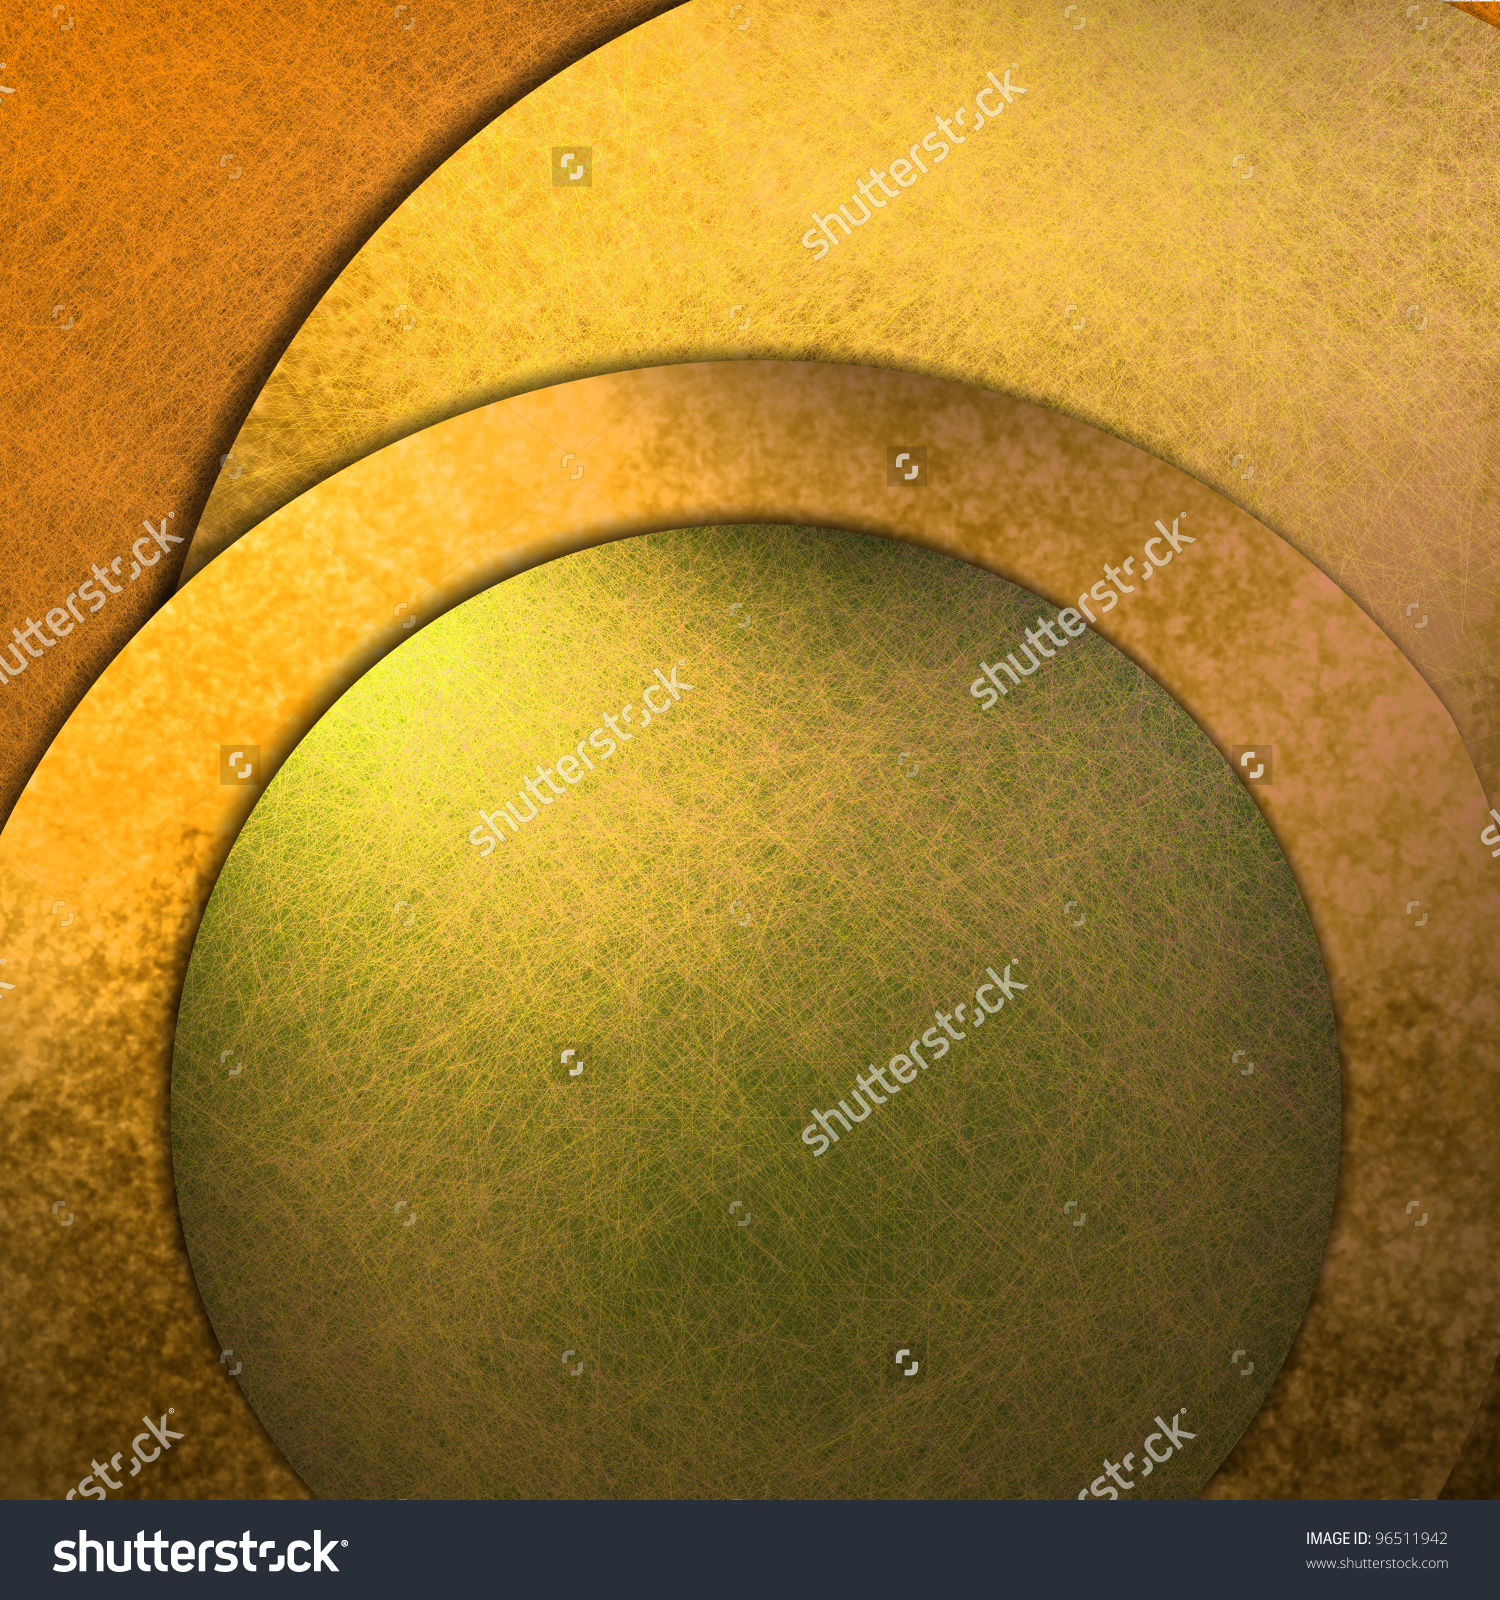 To Add Your Own Text Title Image Or Photo   96511942 Shutterstock 1500x1600